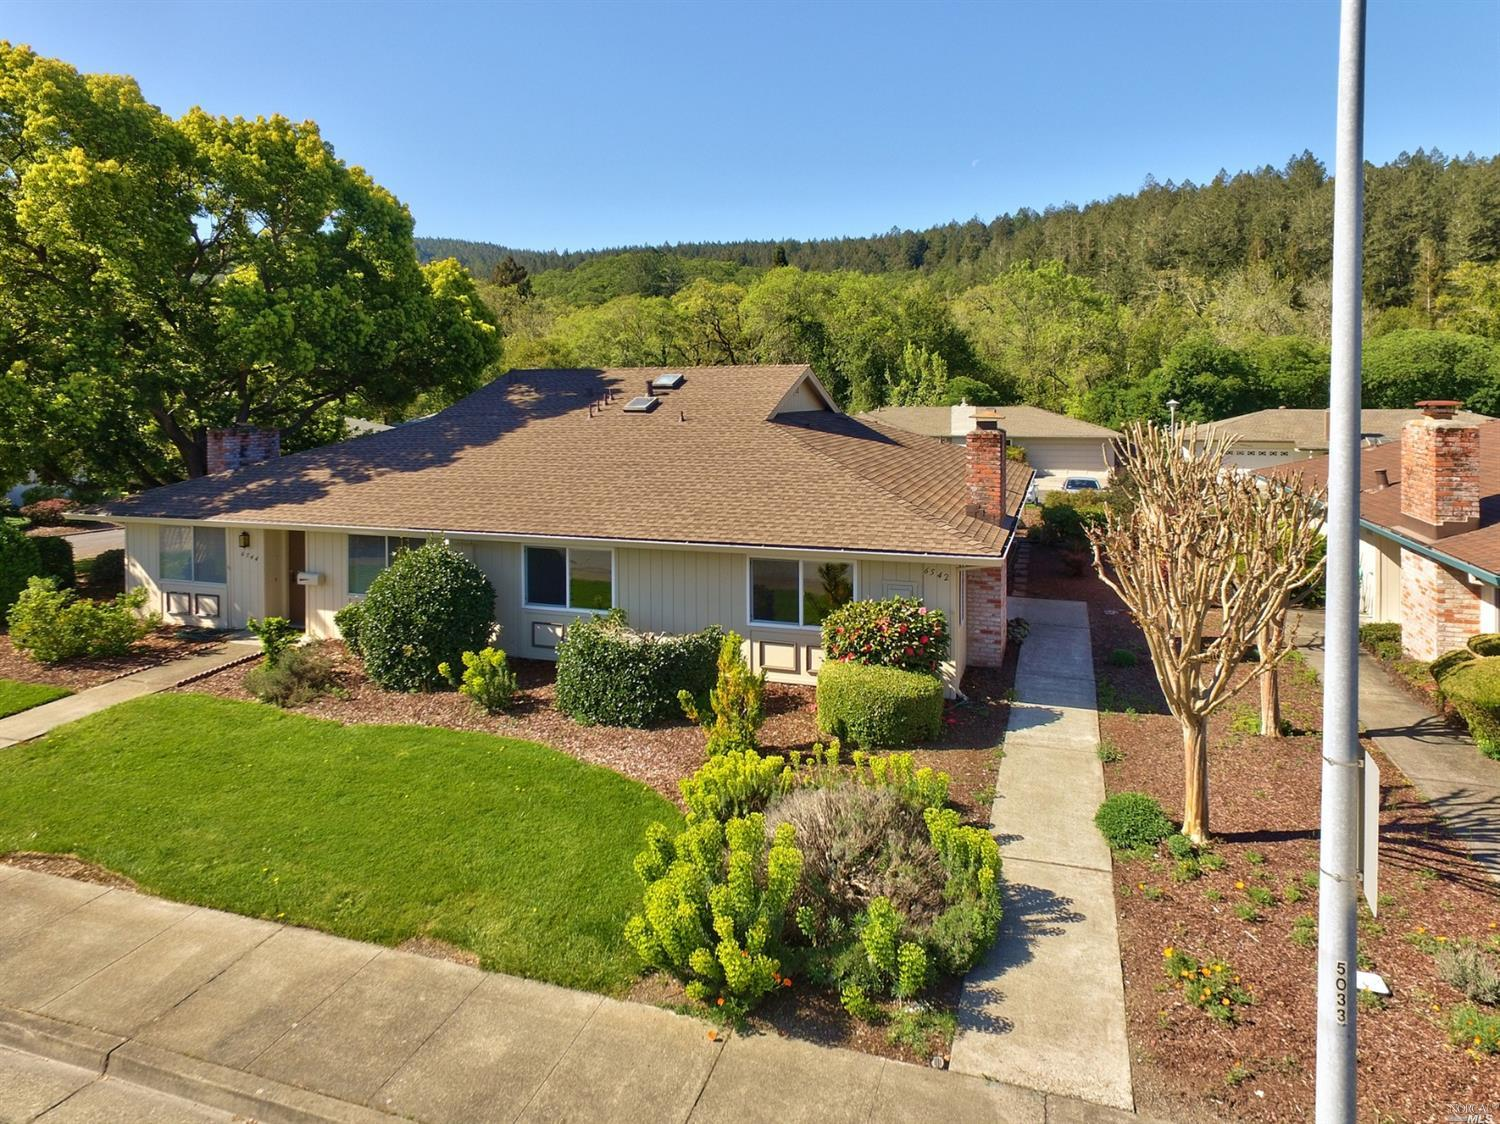 6542 Stone Bridge Road,  Santa Rosa, CA 95409